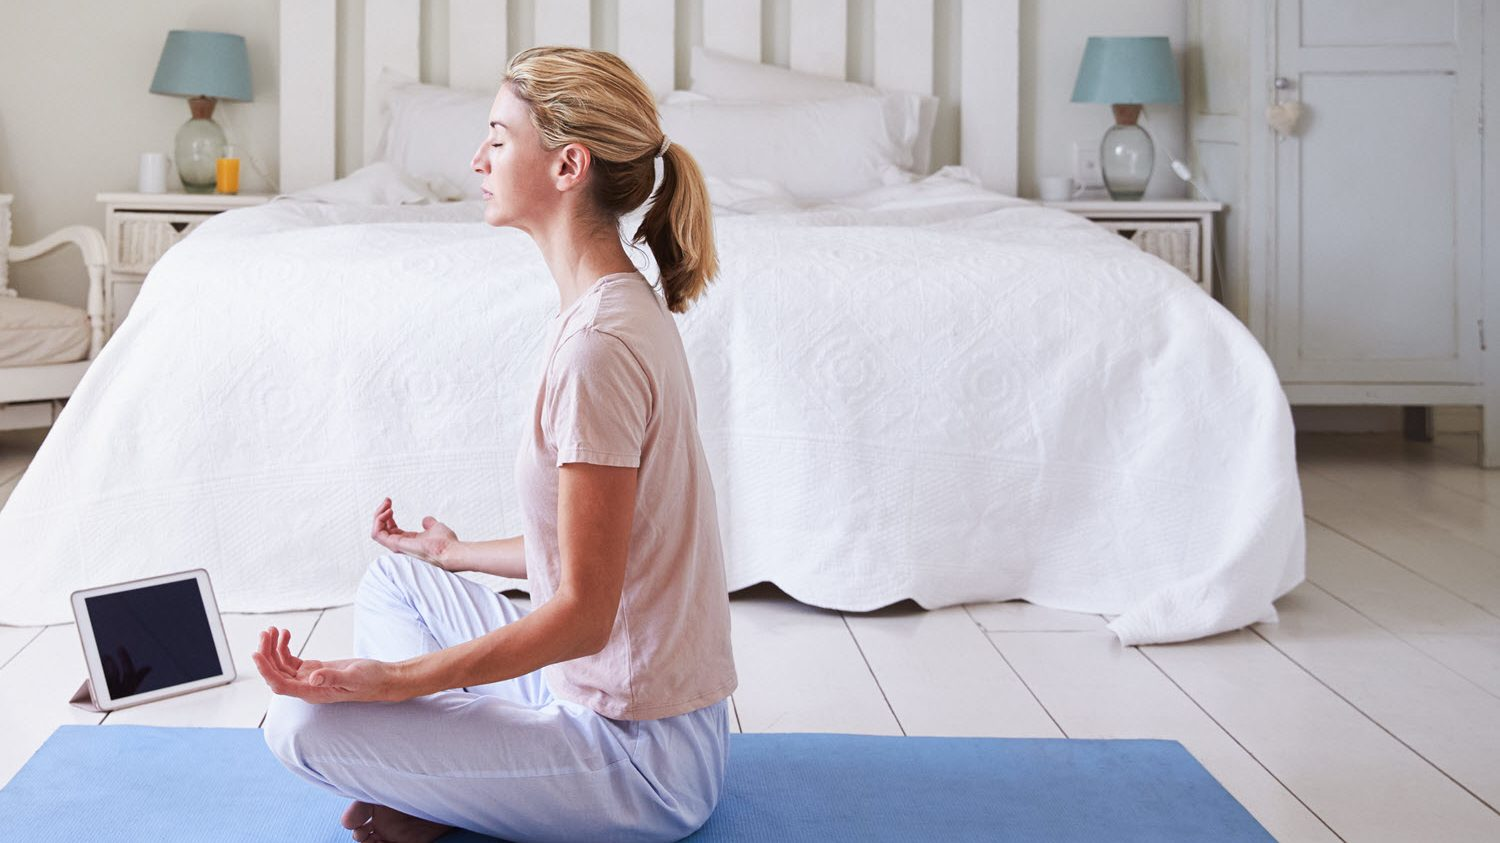 Top 10 Free Meditation Apps For iPhone, iPad and Apple Watch